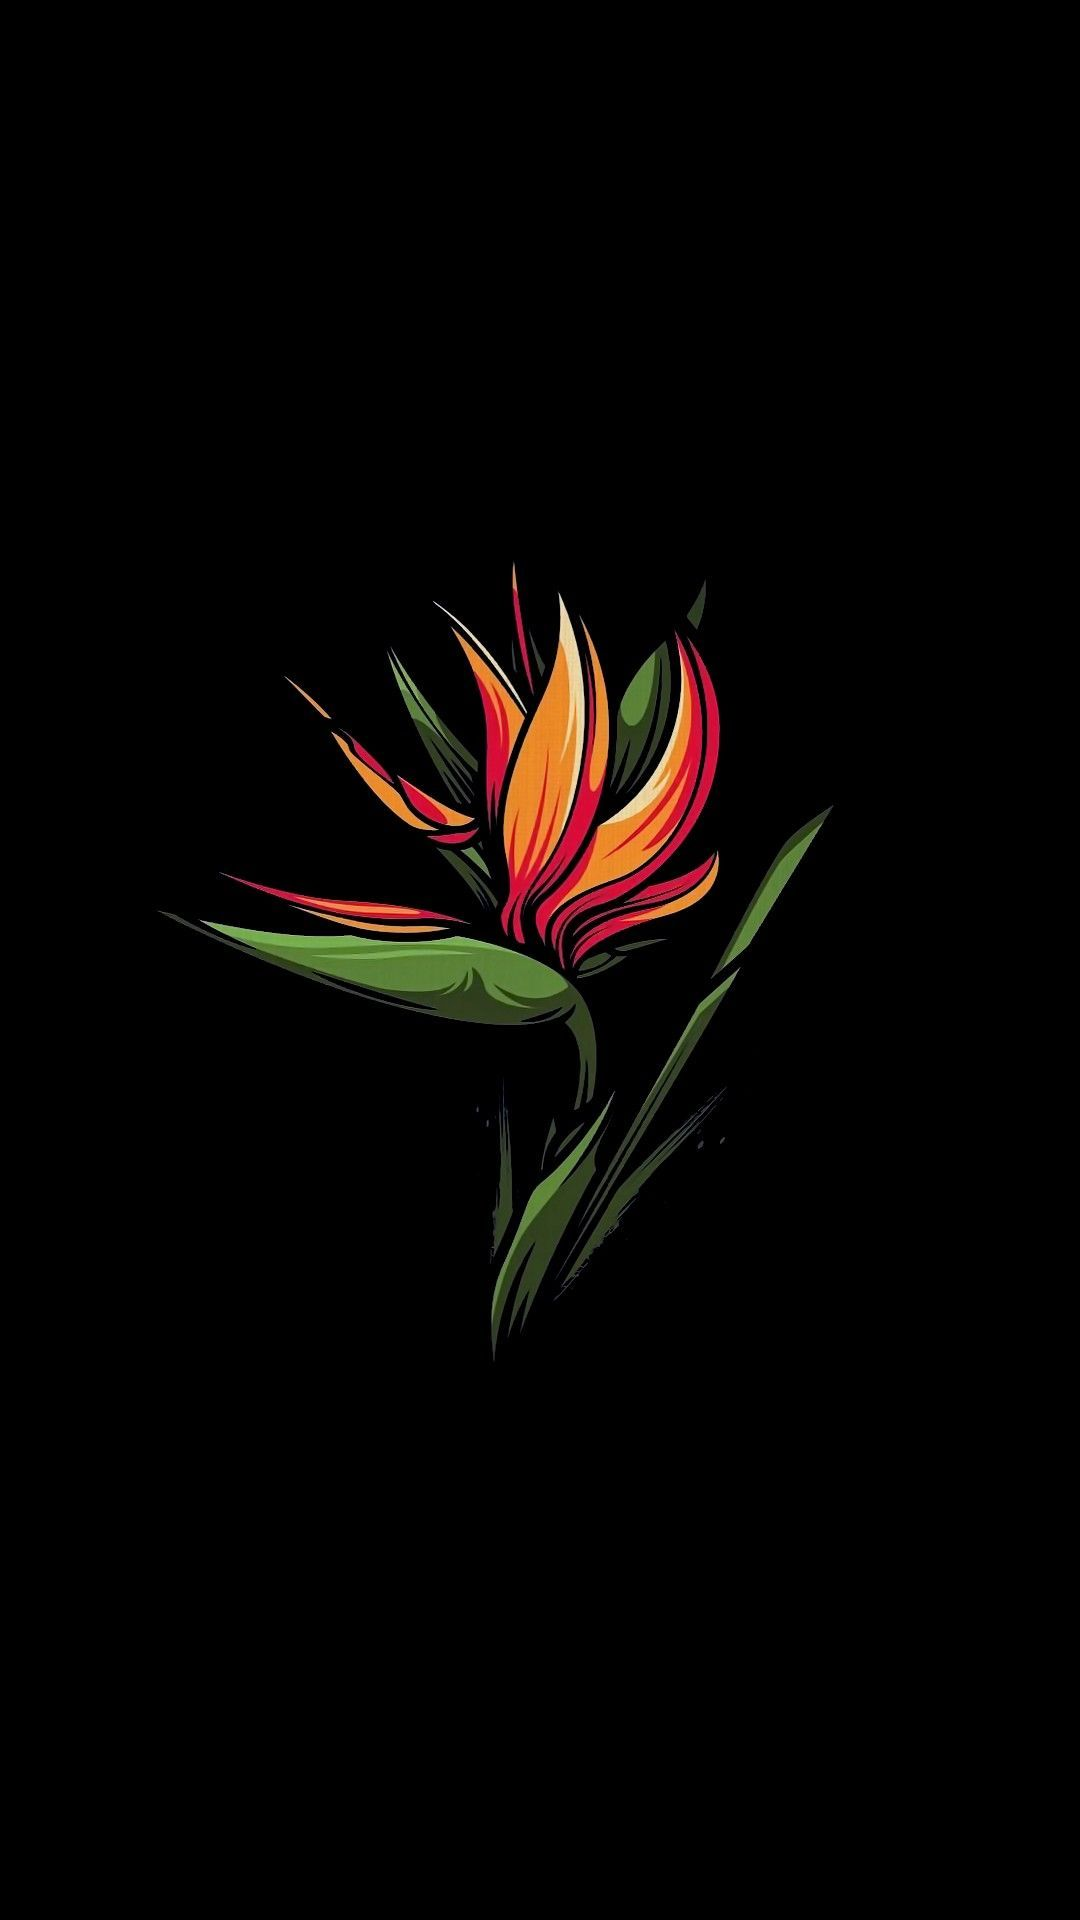 Bird Of Paradise Flower Plant Botany Flowering Plant Graphics In 2020 Black Wallpaper Iphone Wallpaper Birds Of Paradise